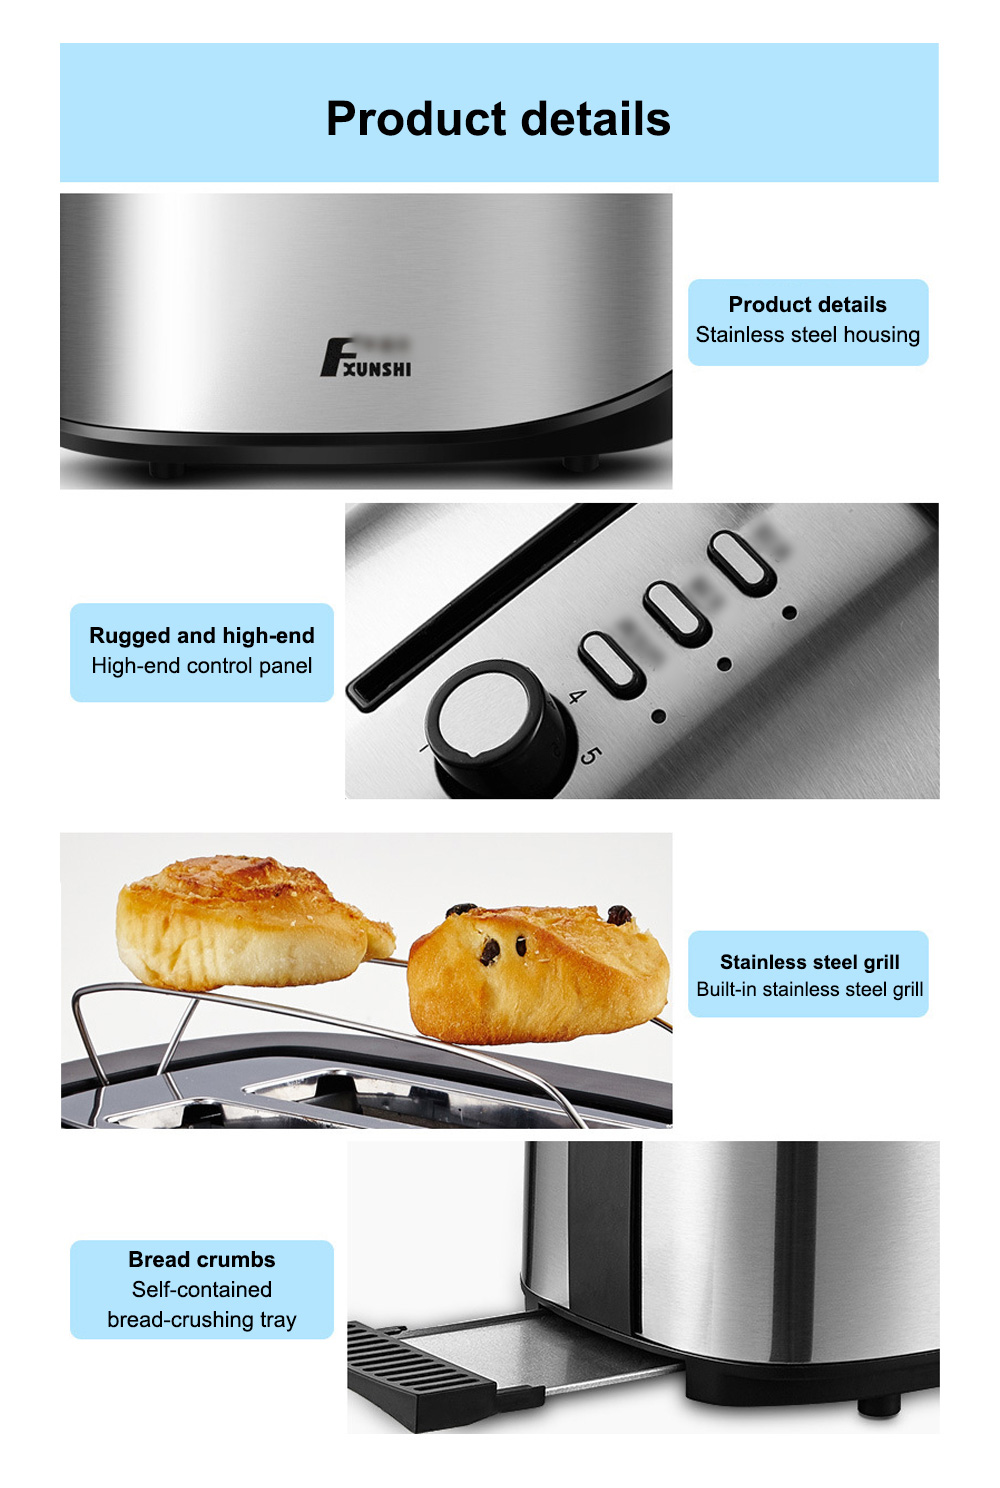 Fxunshi 800W Power Home Appliance Stainless Steel Auto Switch Off 2 Slices 2 Slot Portable Automatic Bread Maker Toaster 11